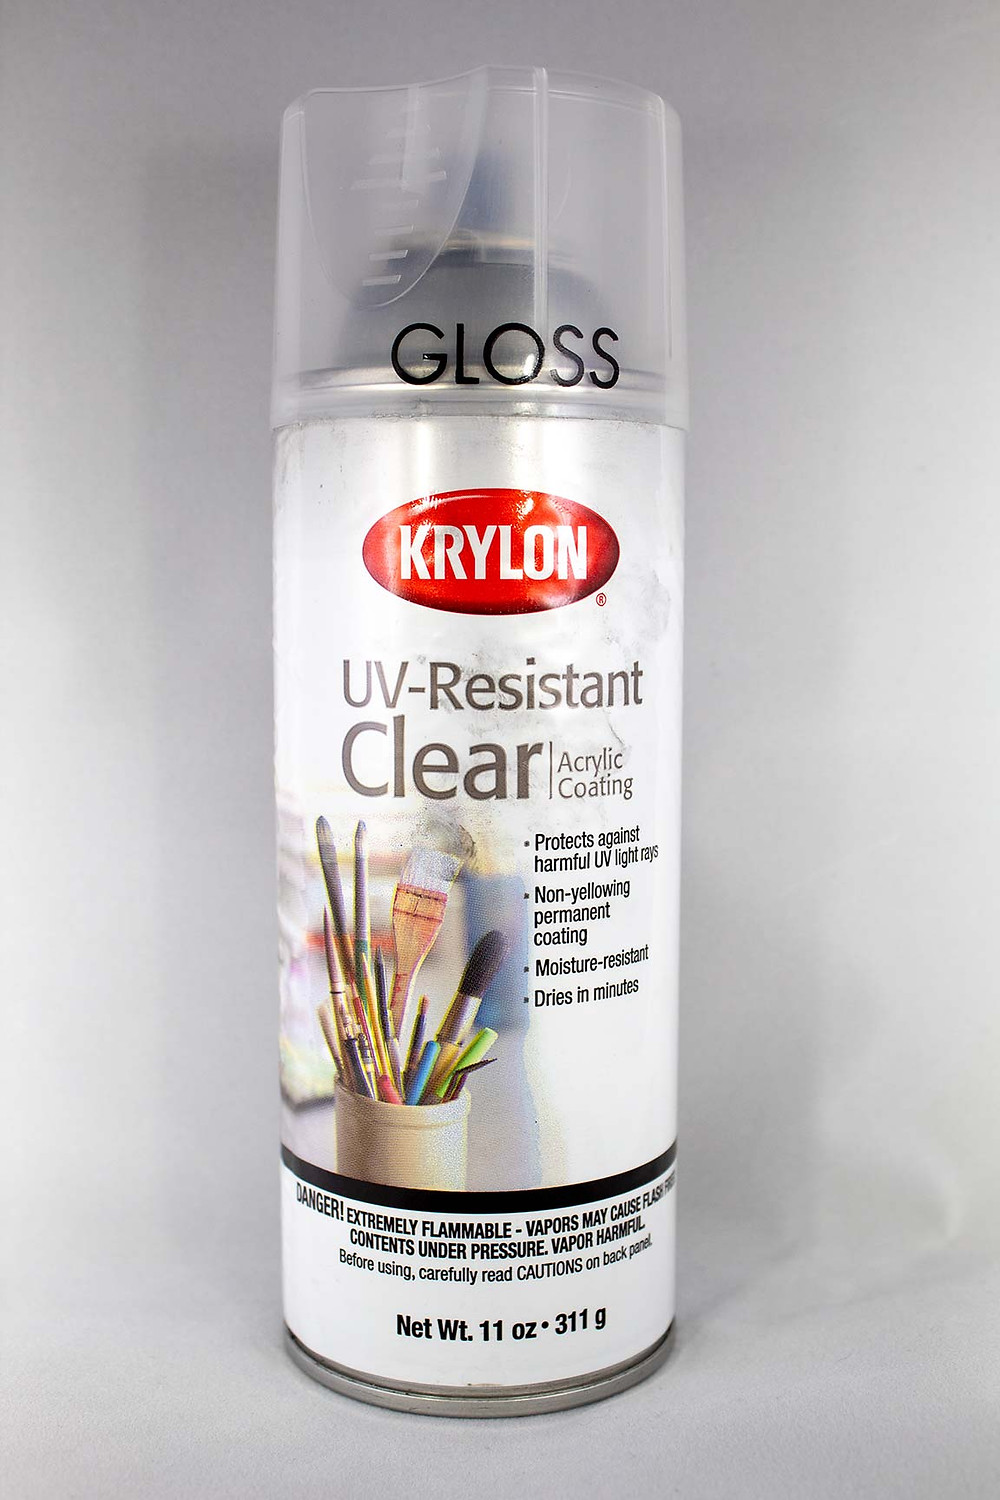 Krylon Glossy UV-Resistant Crystal Clear Acrylic Coating